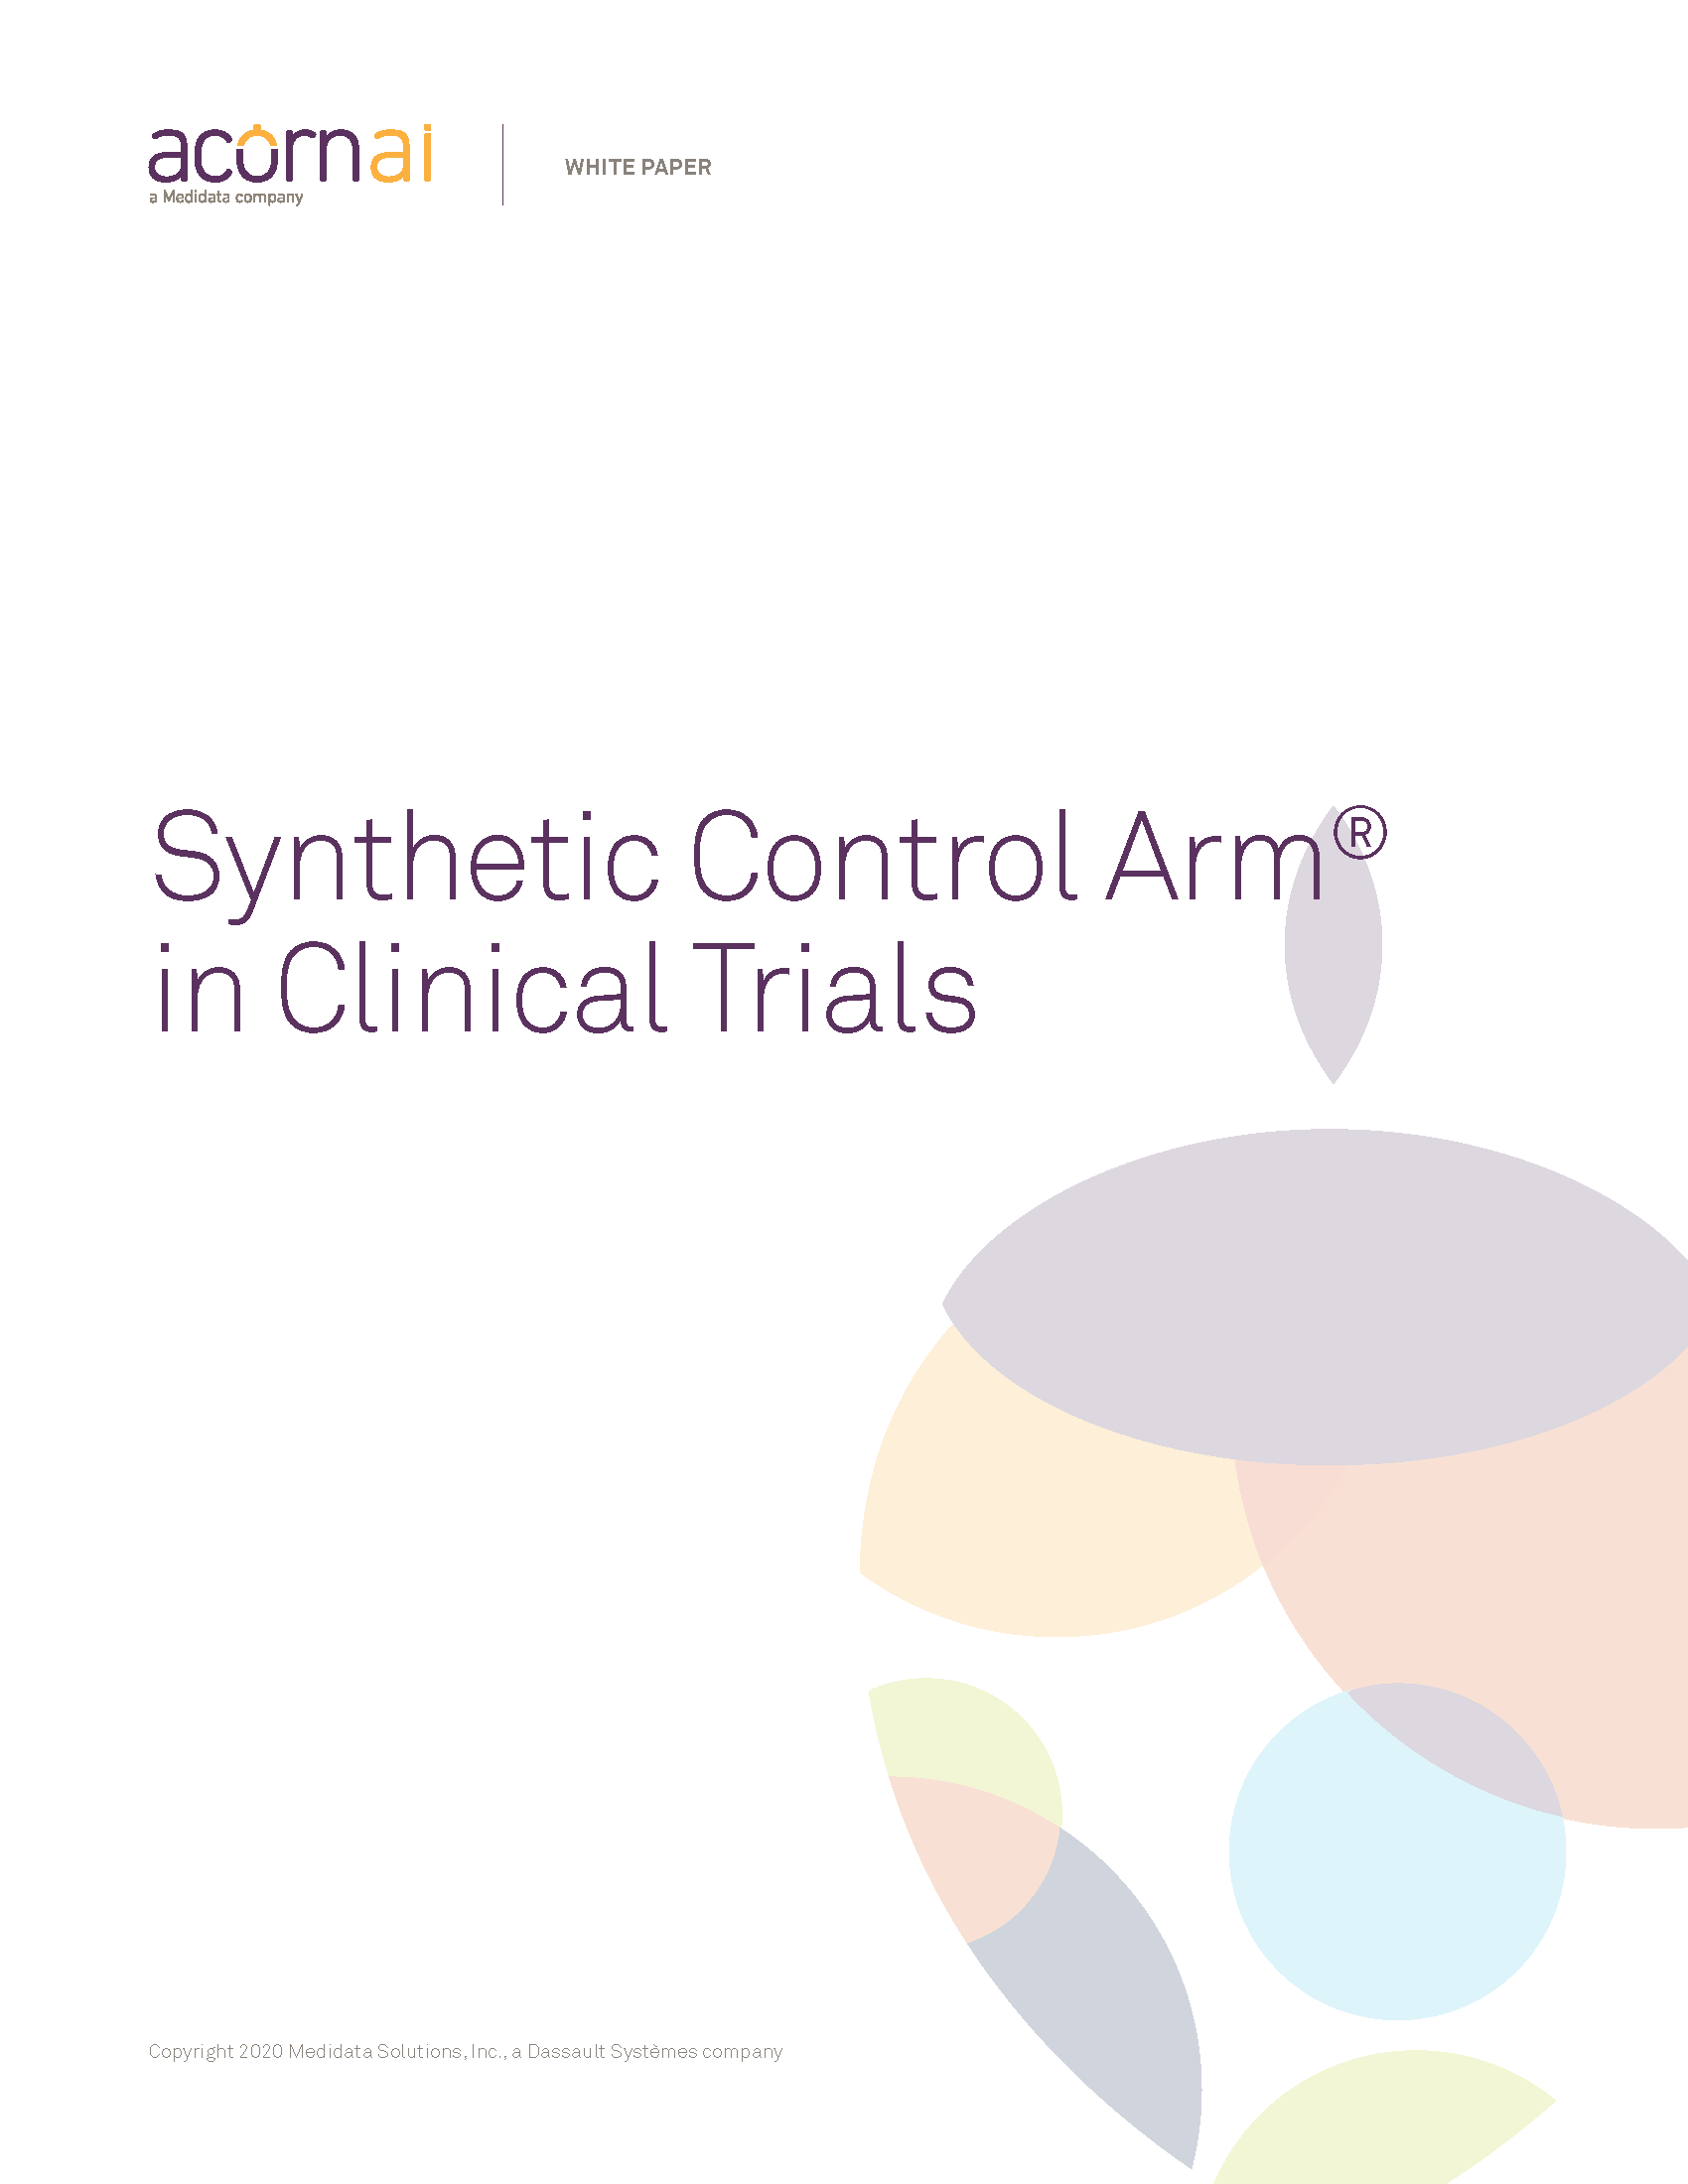 Synthetic Control Arm